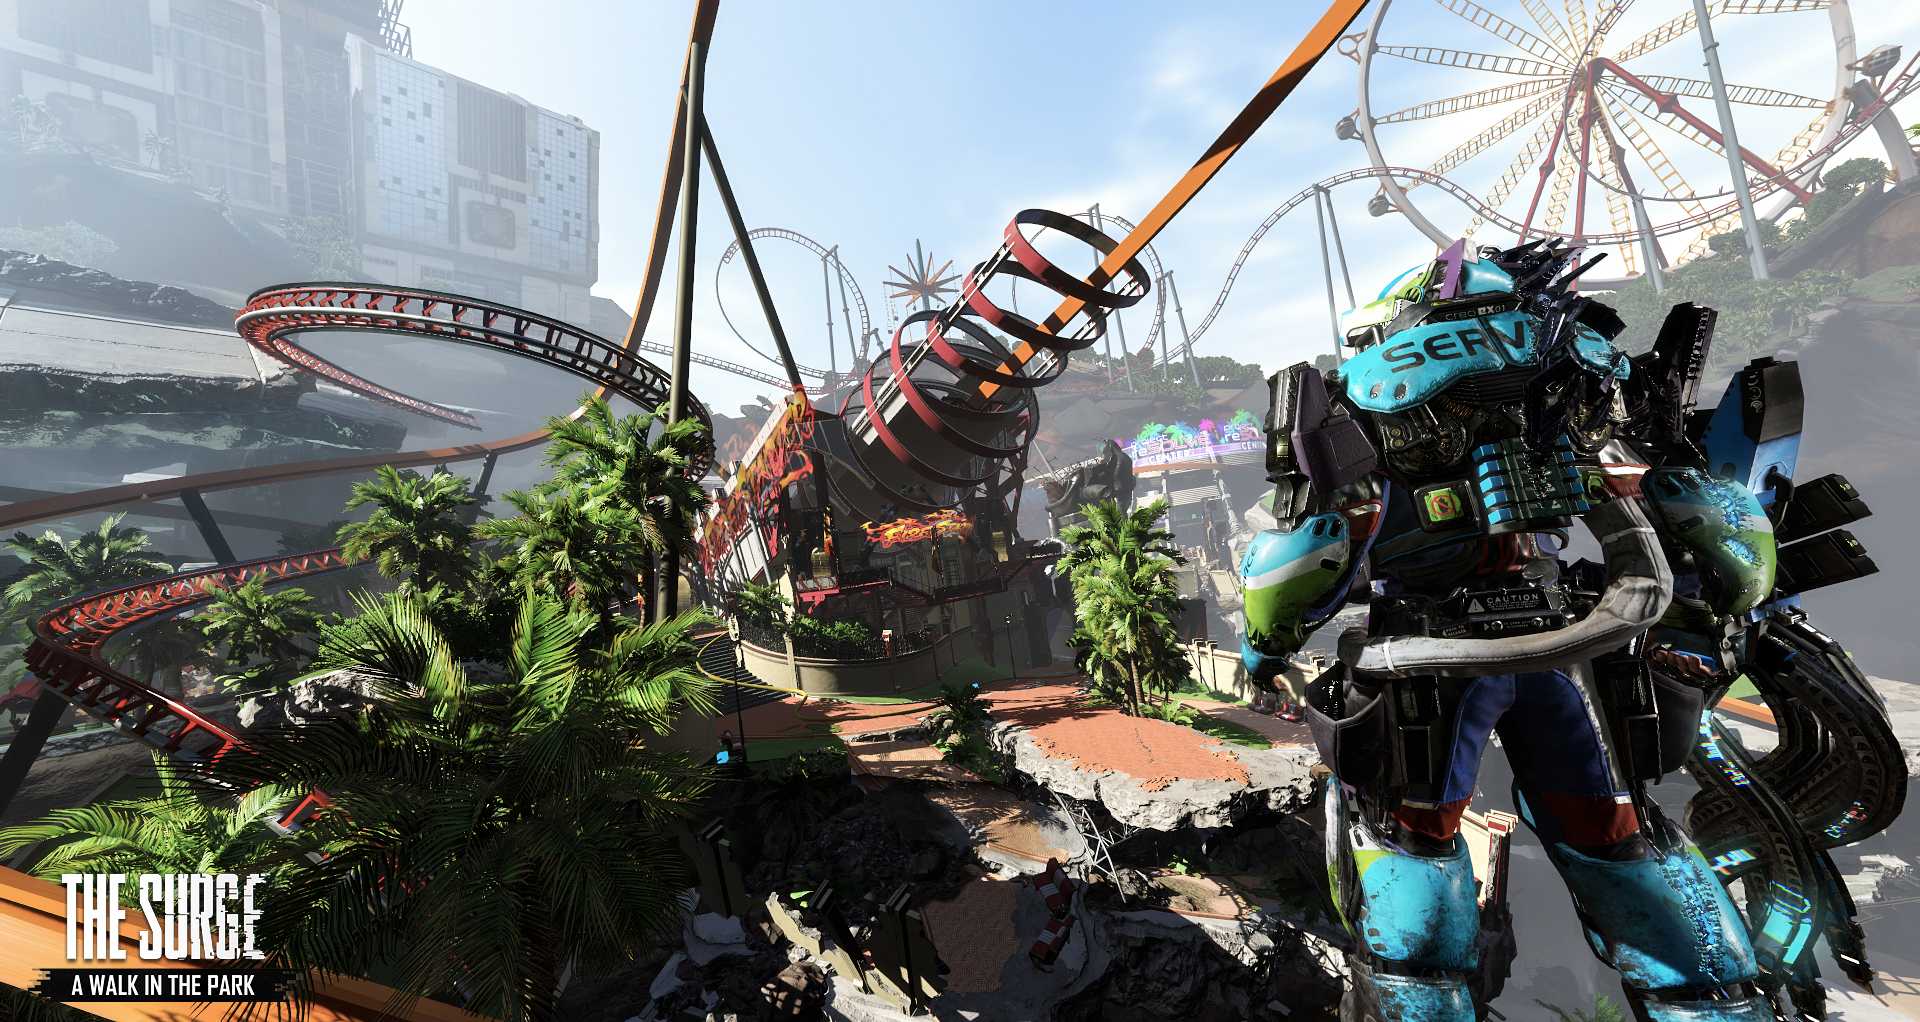 A New Teaser Trailer Has Dropped For The Surge A Walk In The Park